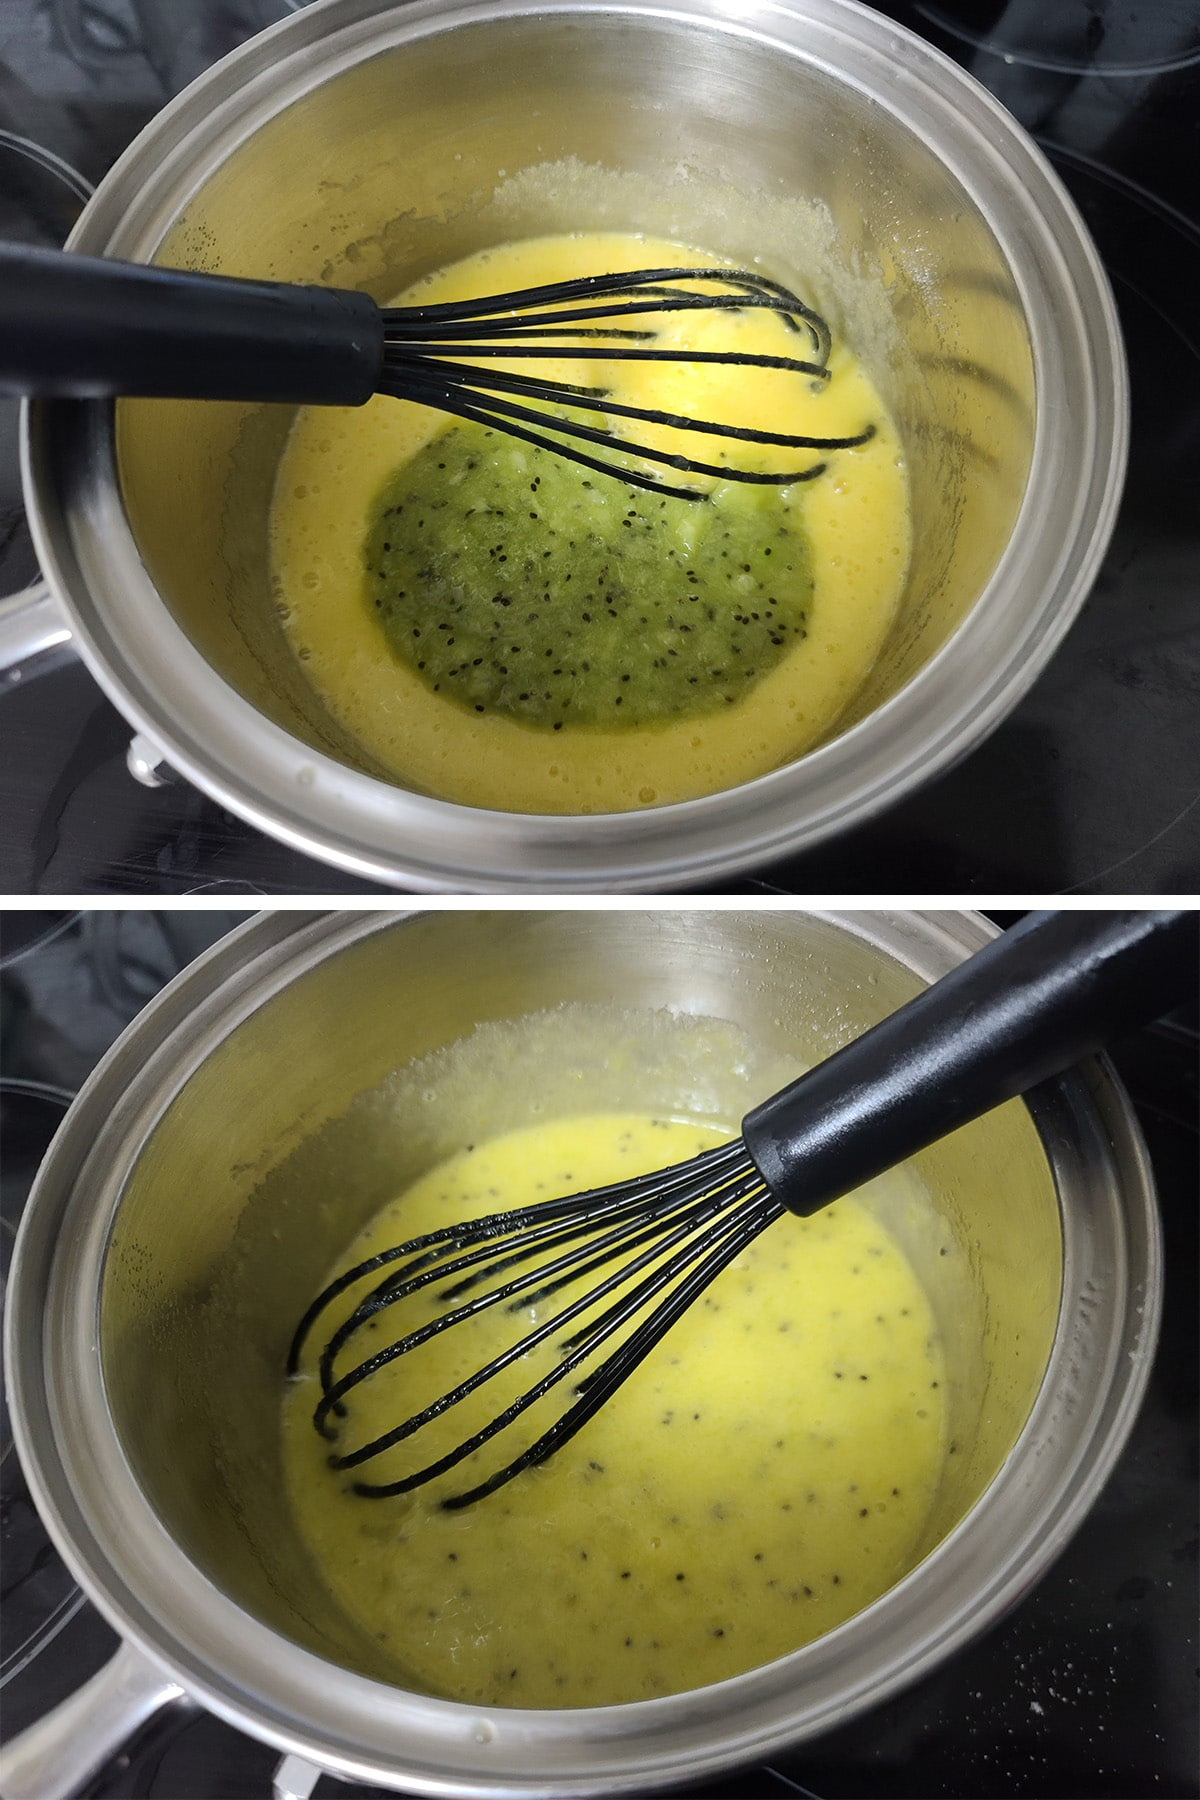 Kiwi puree being added to the egg and sugar mixture.